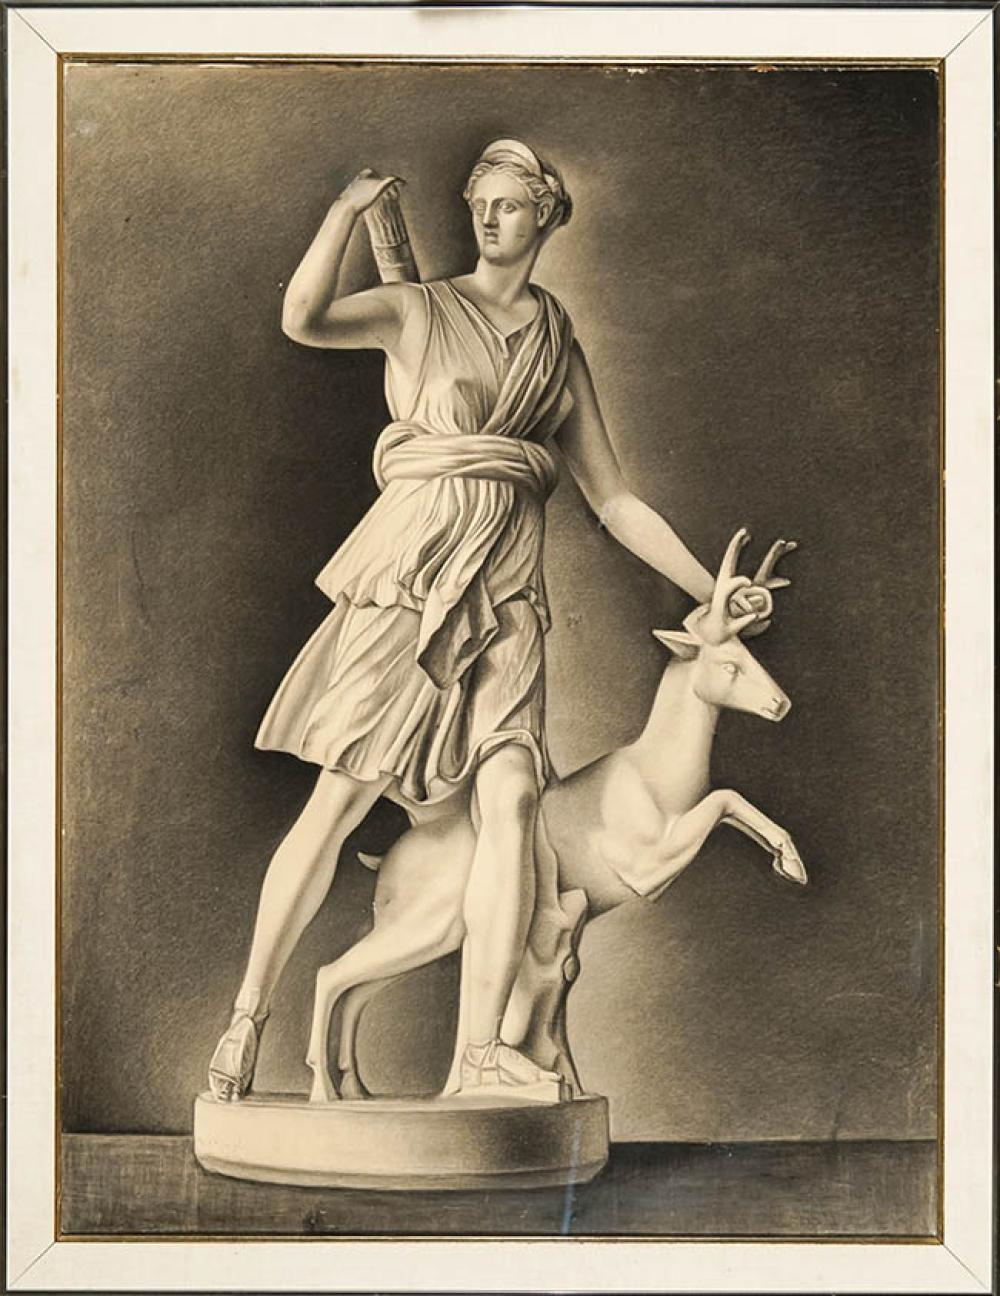 European School, 20th Century, Diana the Huntress with Stag, Charcoal on Paper mounted on Linen, 39-1/2 x 29-1/2 in